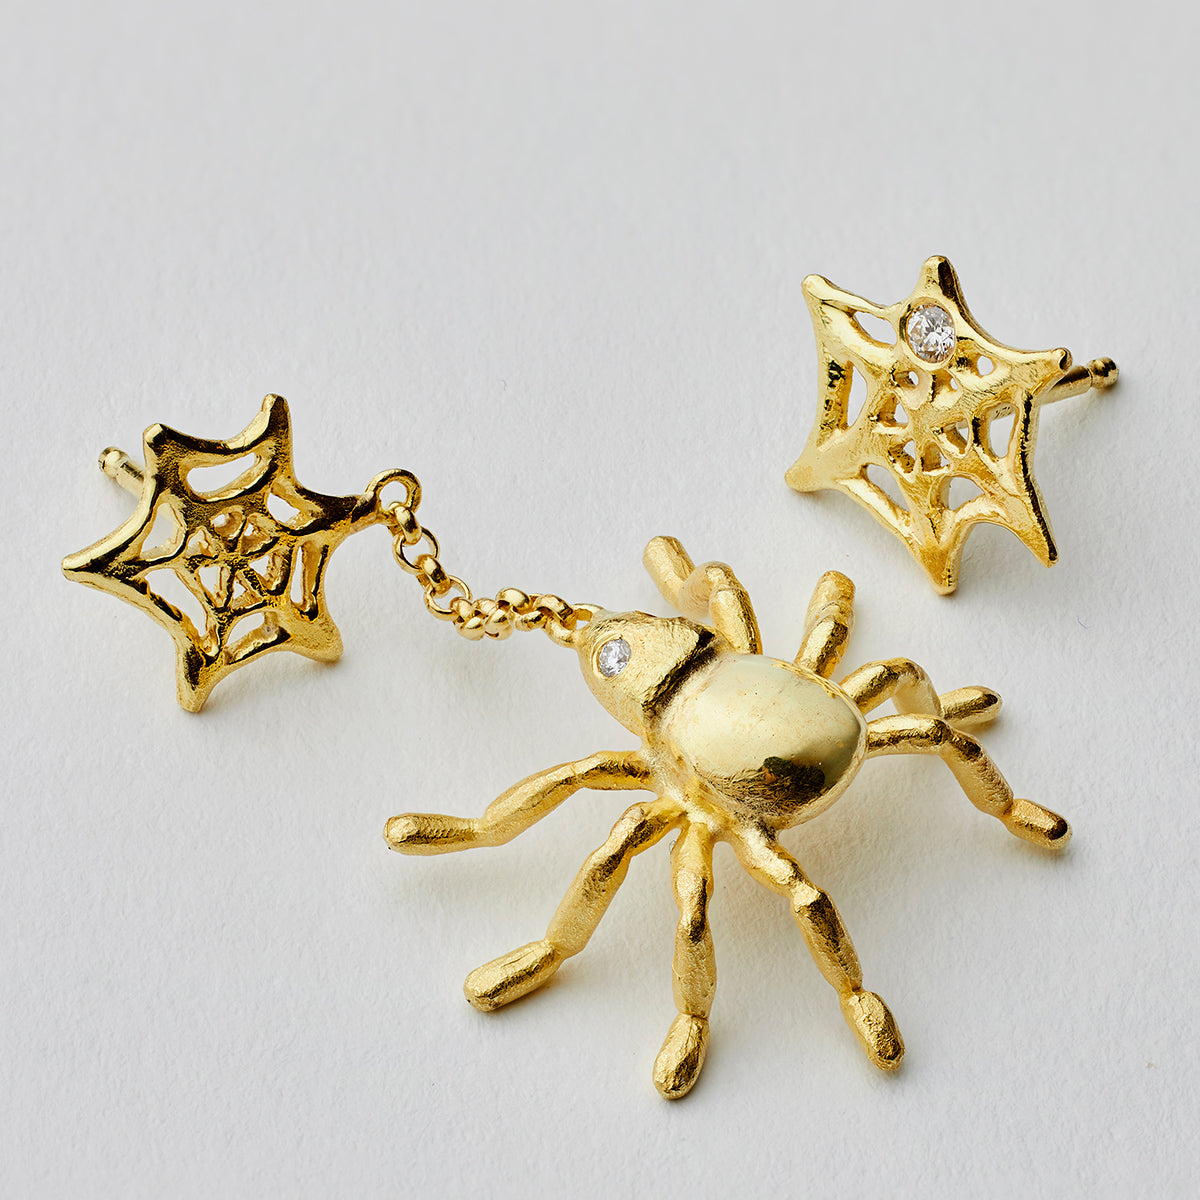 The Spider Gold Earring